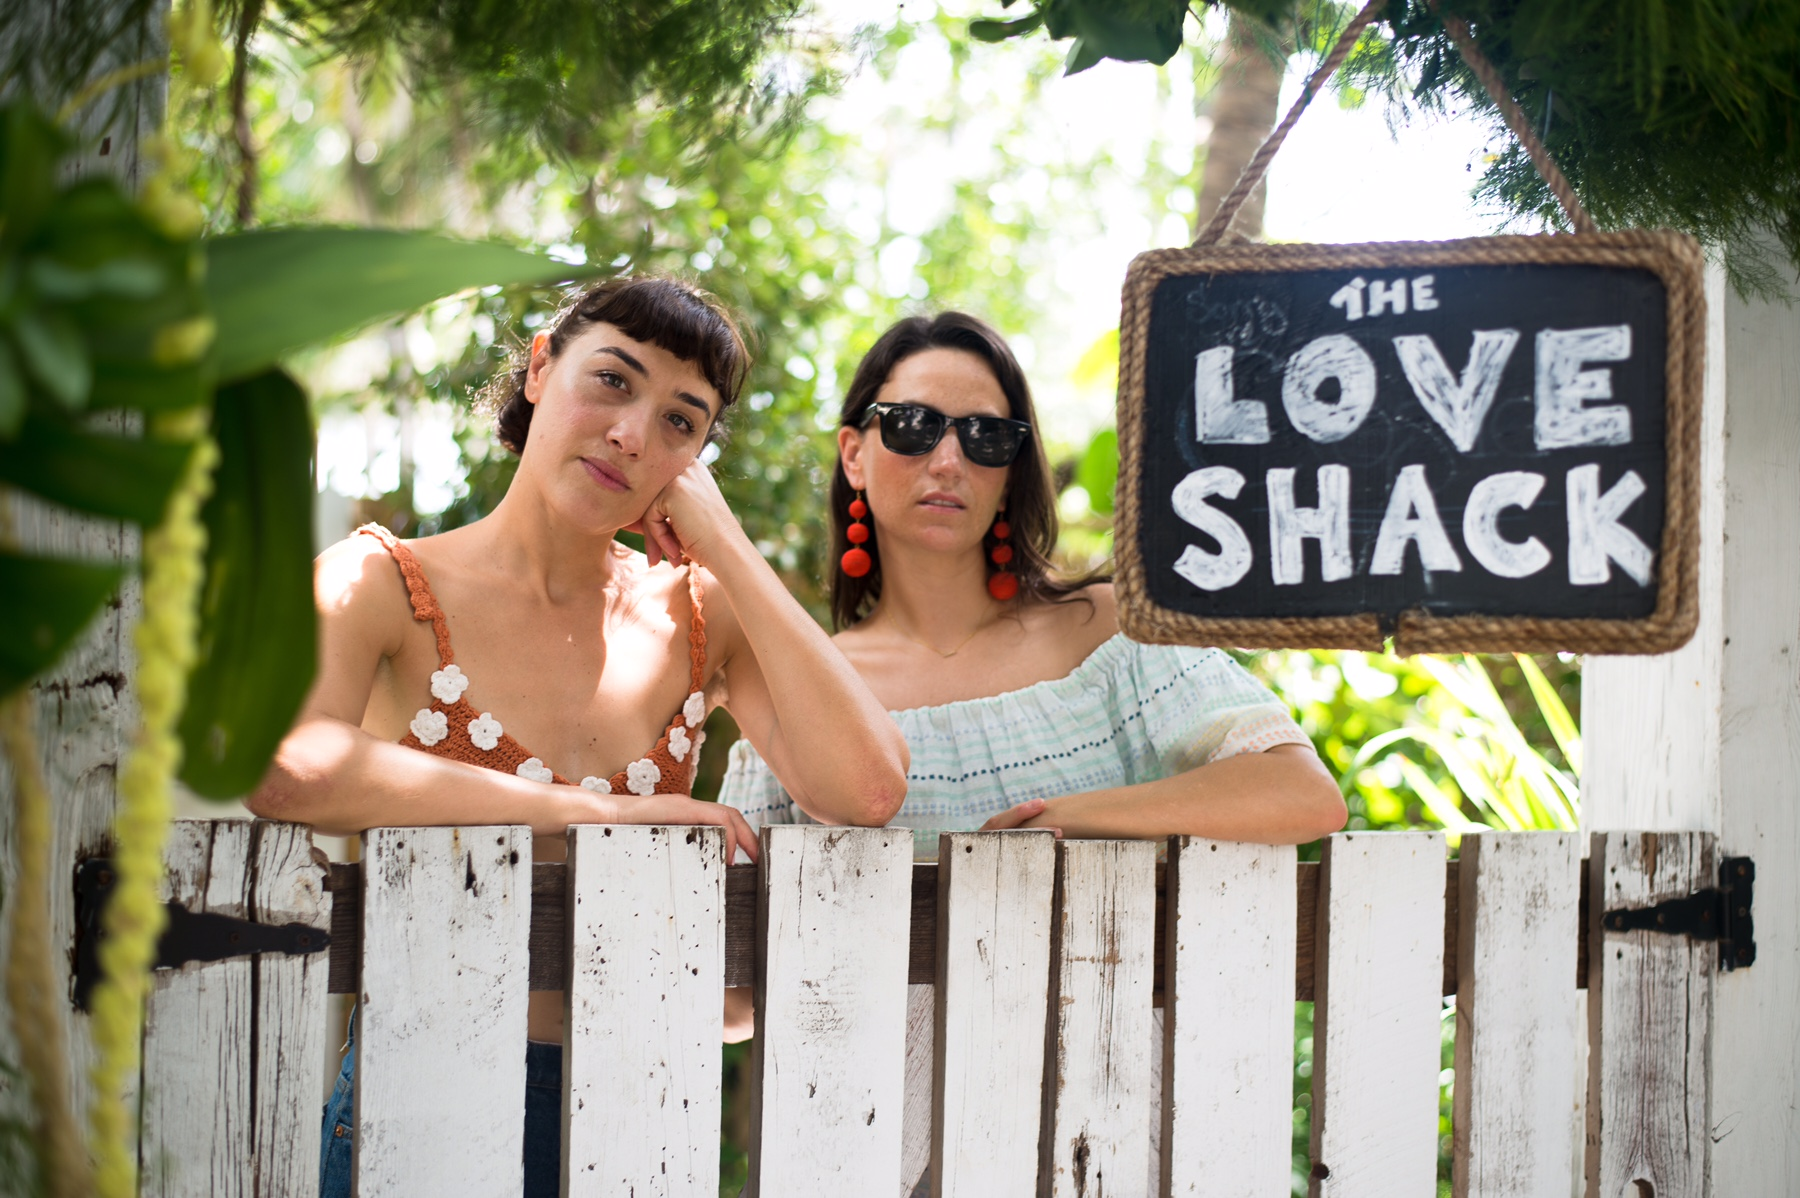 Mia Moretti and Piece & Co. CEO and Founder, Kathleen Wright, in front of the Love Shack Presentation at Miami Swim Week where they led a conversation on sustainability in fashion.